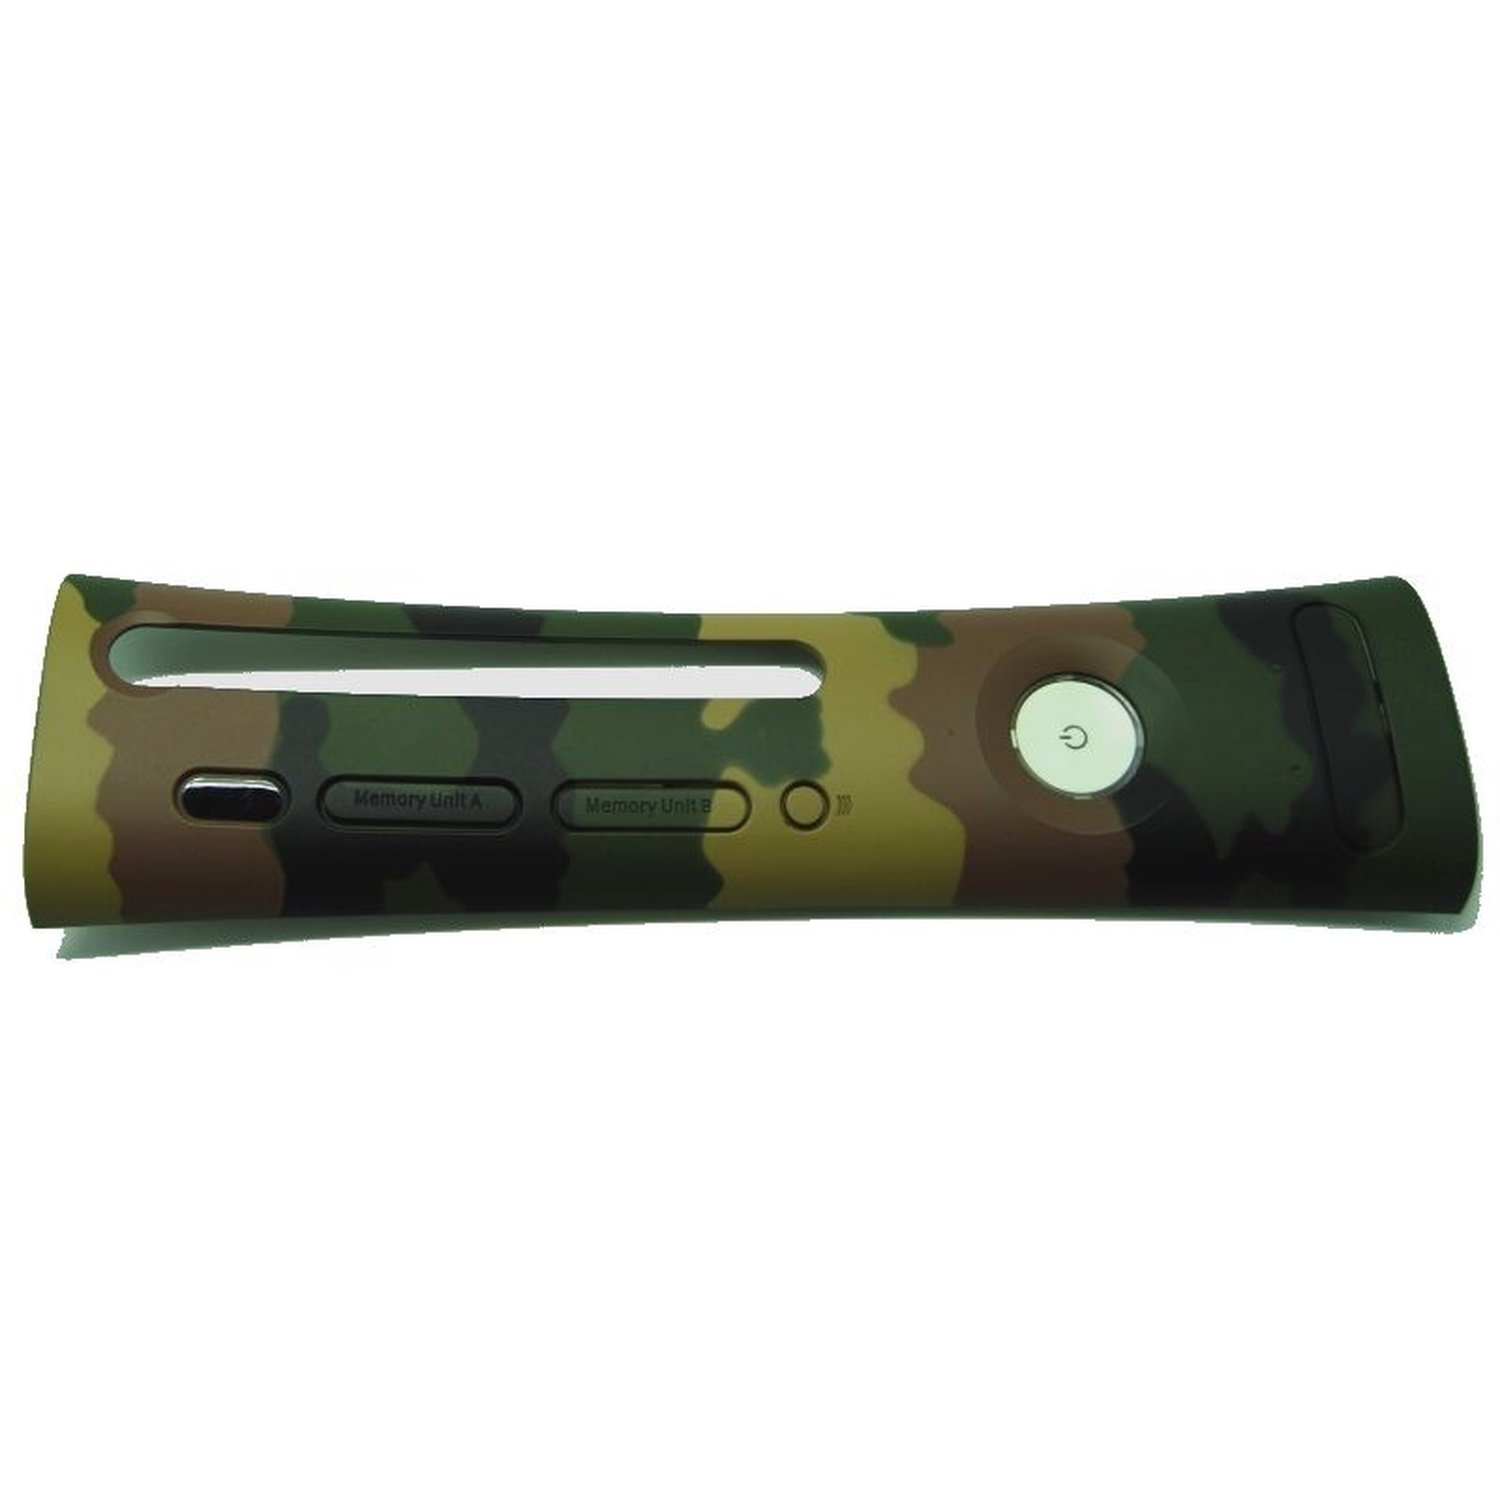 XBOX 360 Faceplate Camouflage Green-Black-Brown fashion thicken wool camouflage sweater for women army green